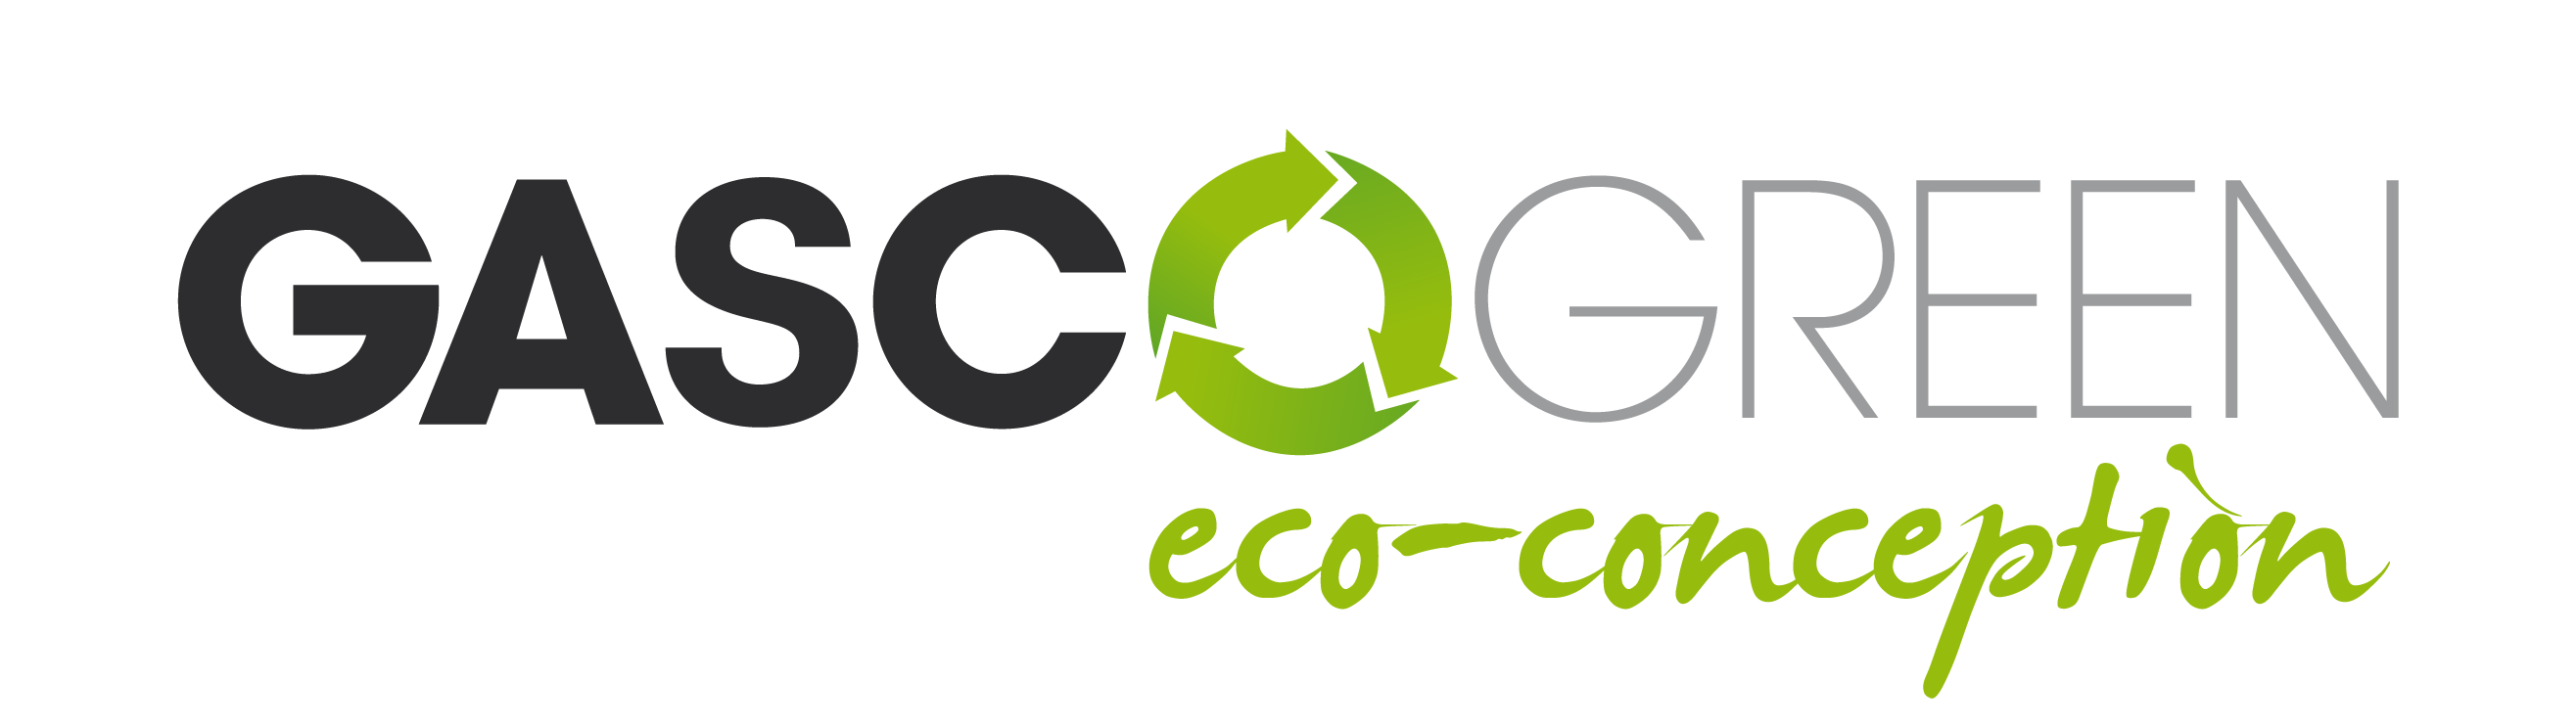 GASCOGNE-GASCOGREEN ecoconception